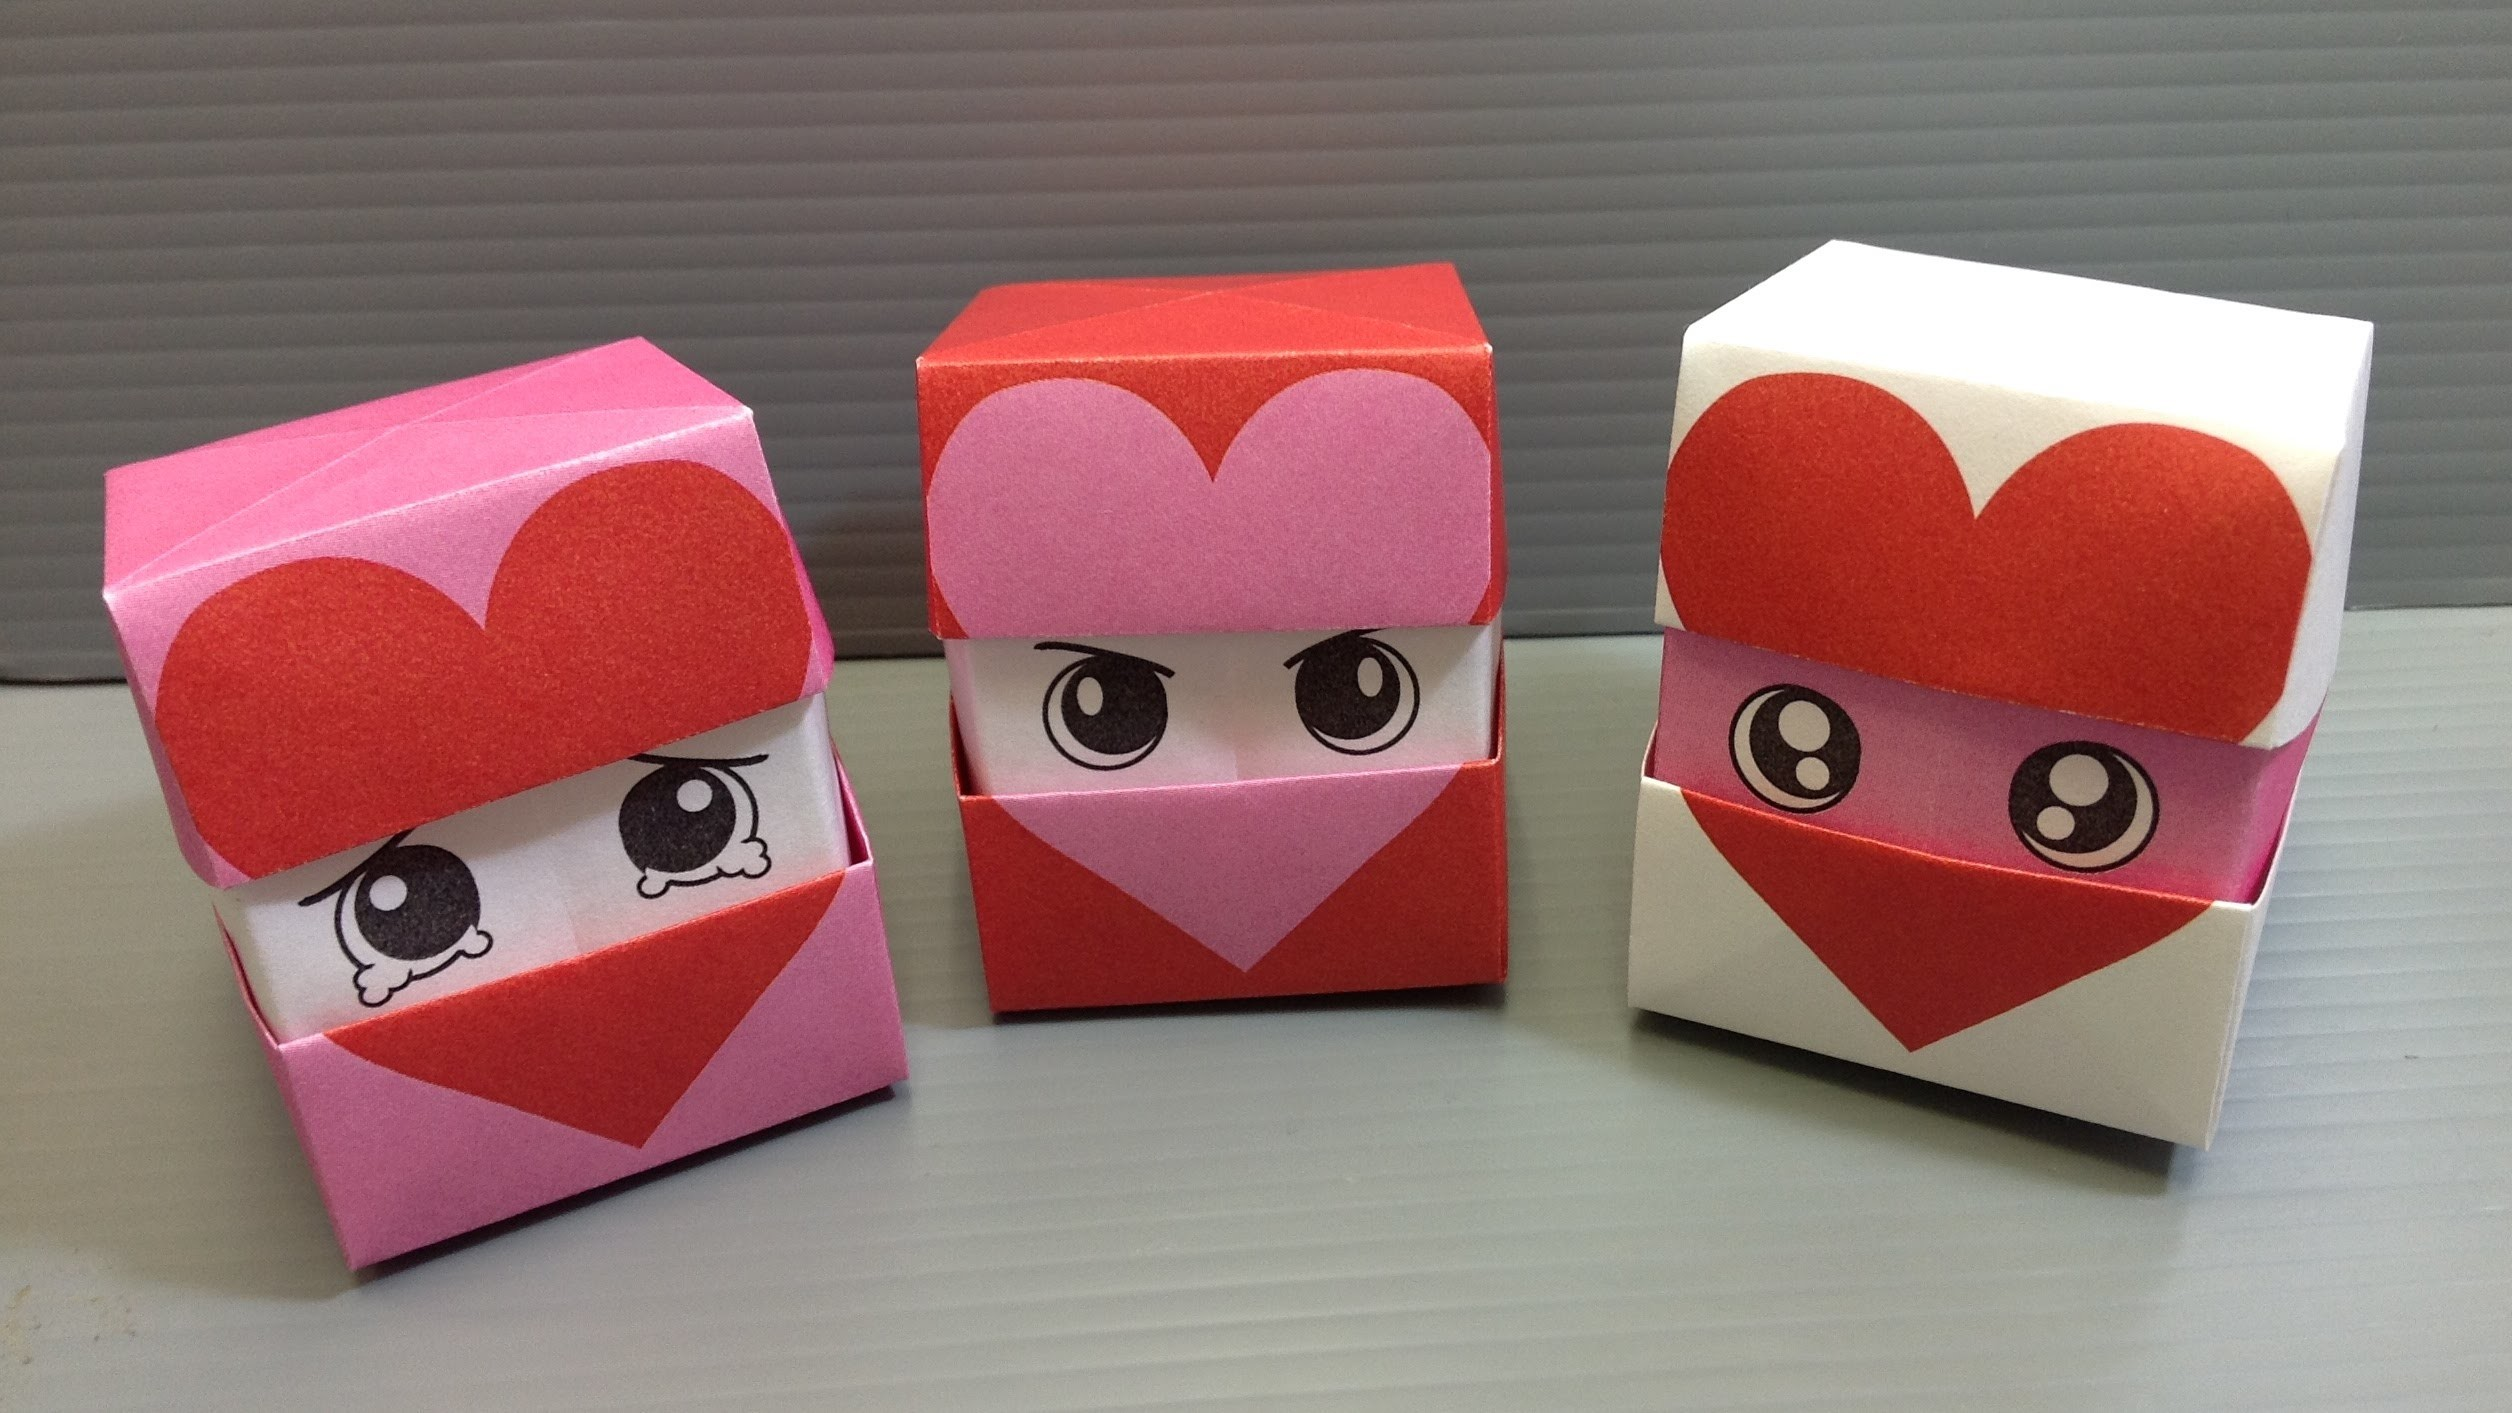 Origami Changing Faces Heart Cube - Print at Home